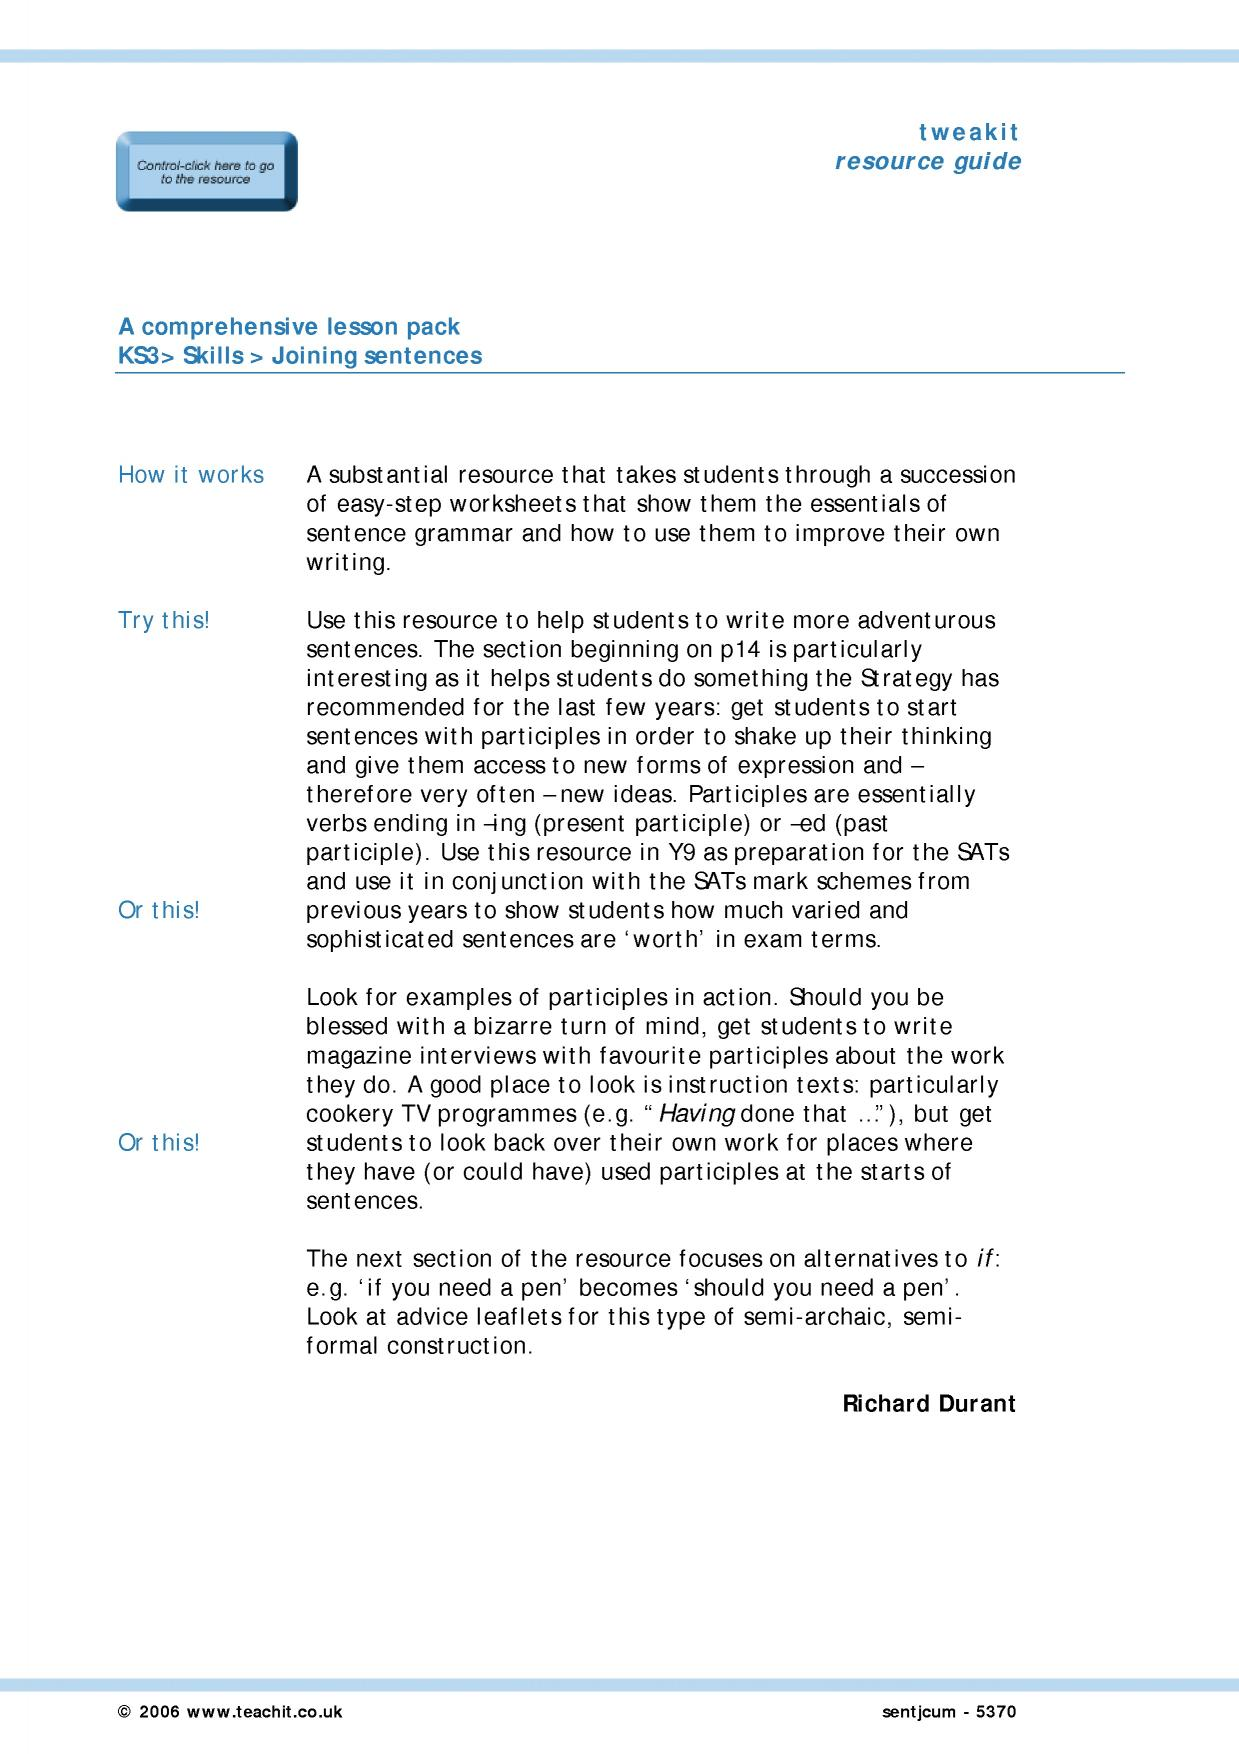 Worksheet On Forces Ks  Sentence Construction  Teachit English Fractions Of A Set Worksheet Word with Bill Nye The Science Guy Nutrition Worksheet  Preview Remove Excel Worksheet Password